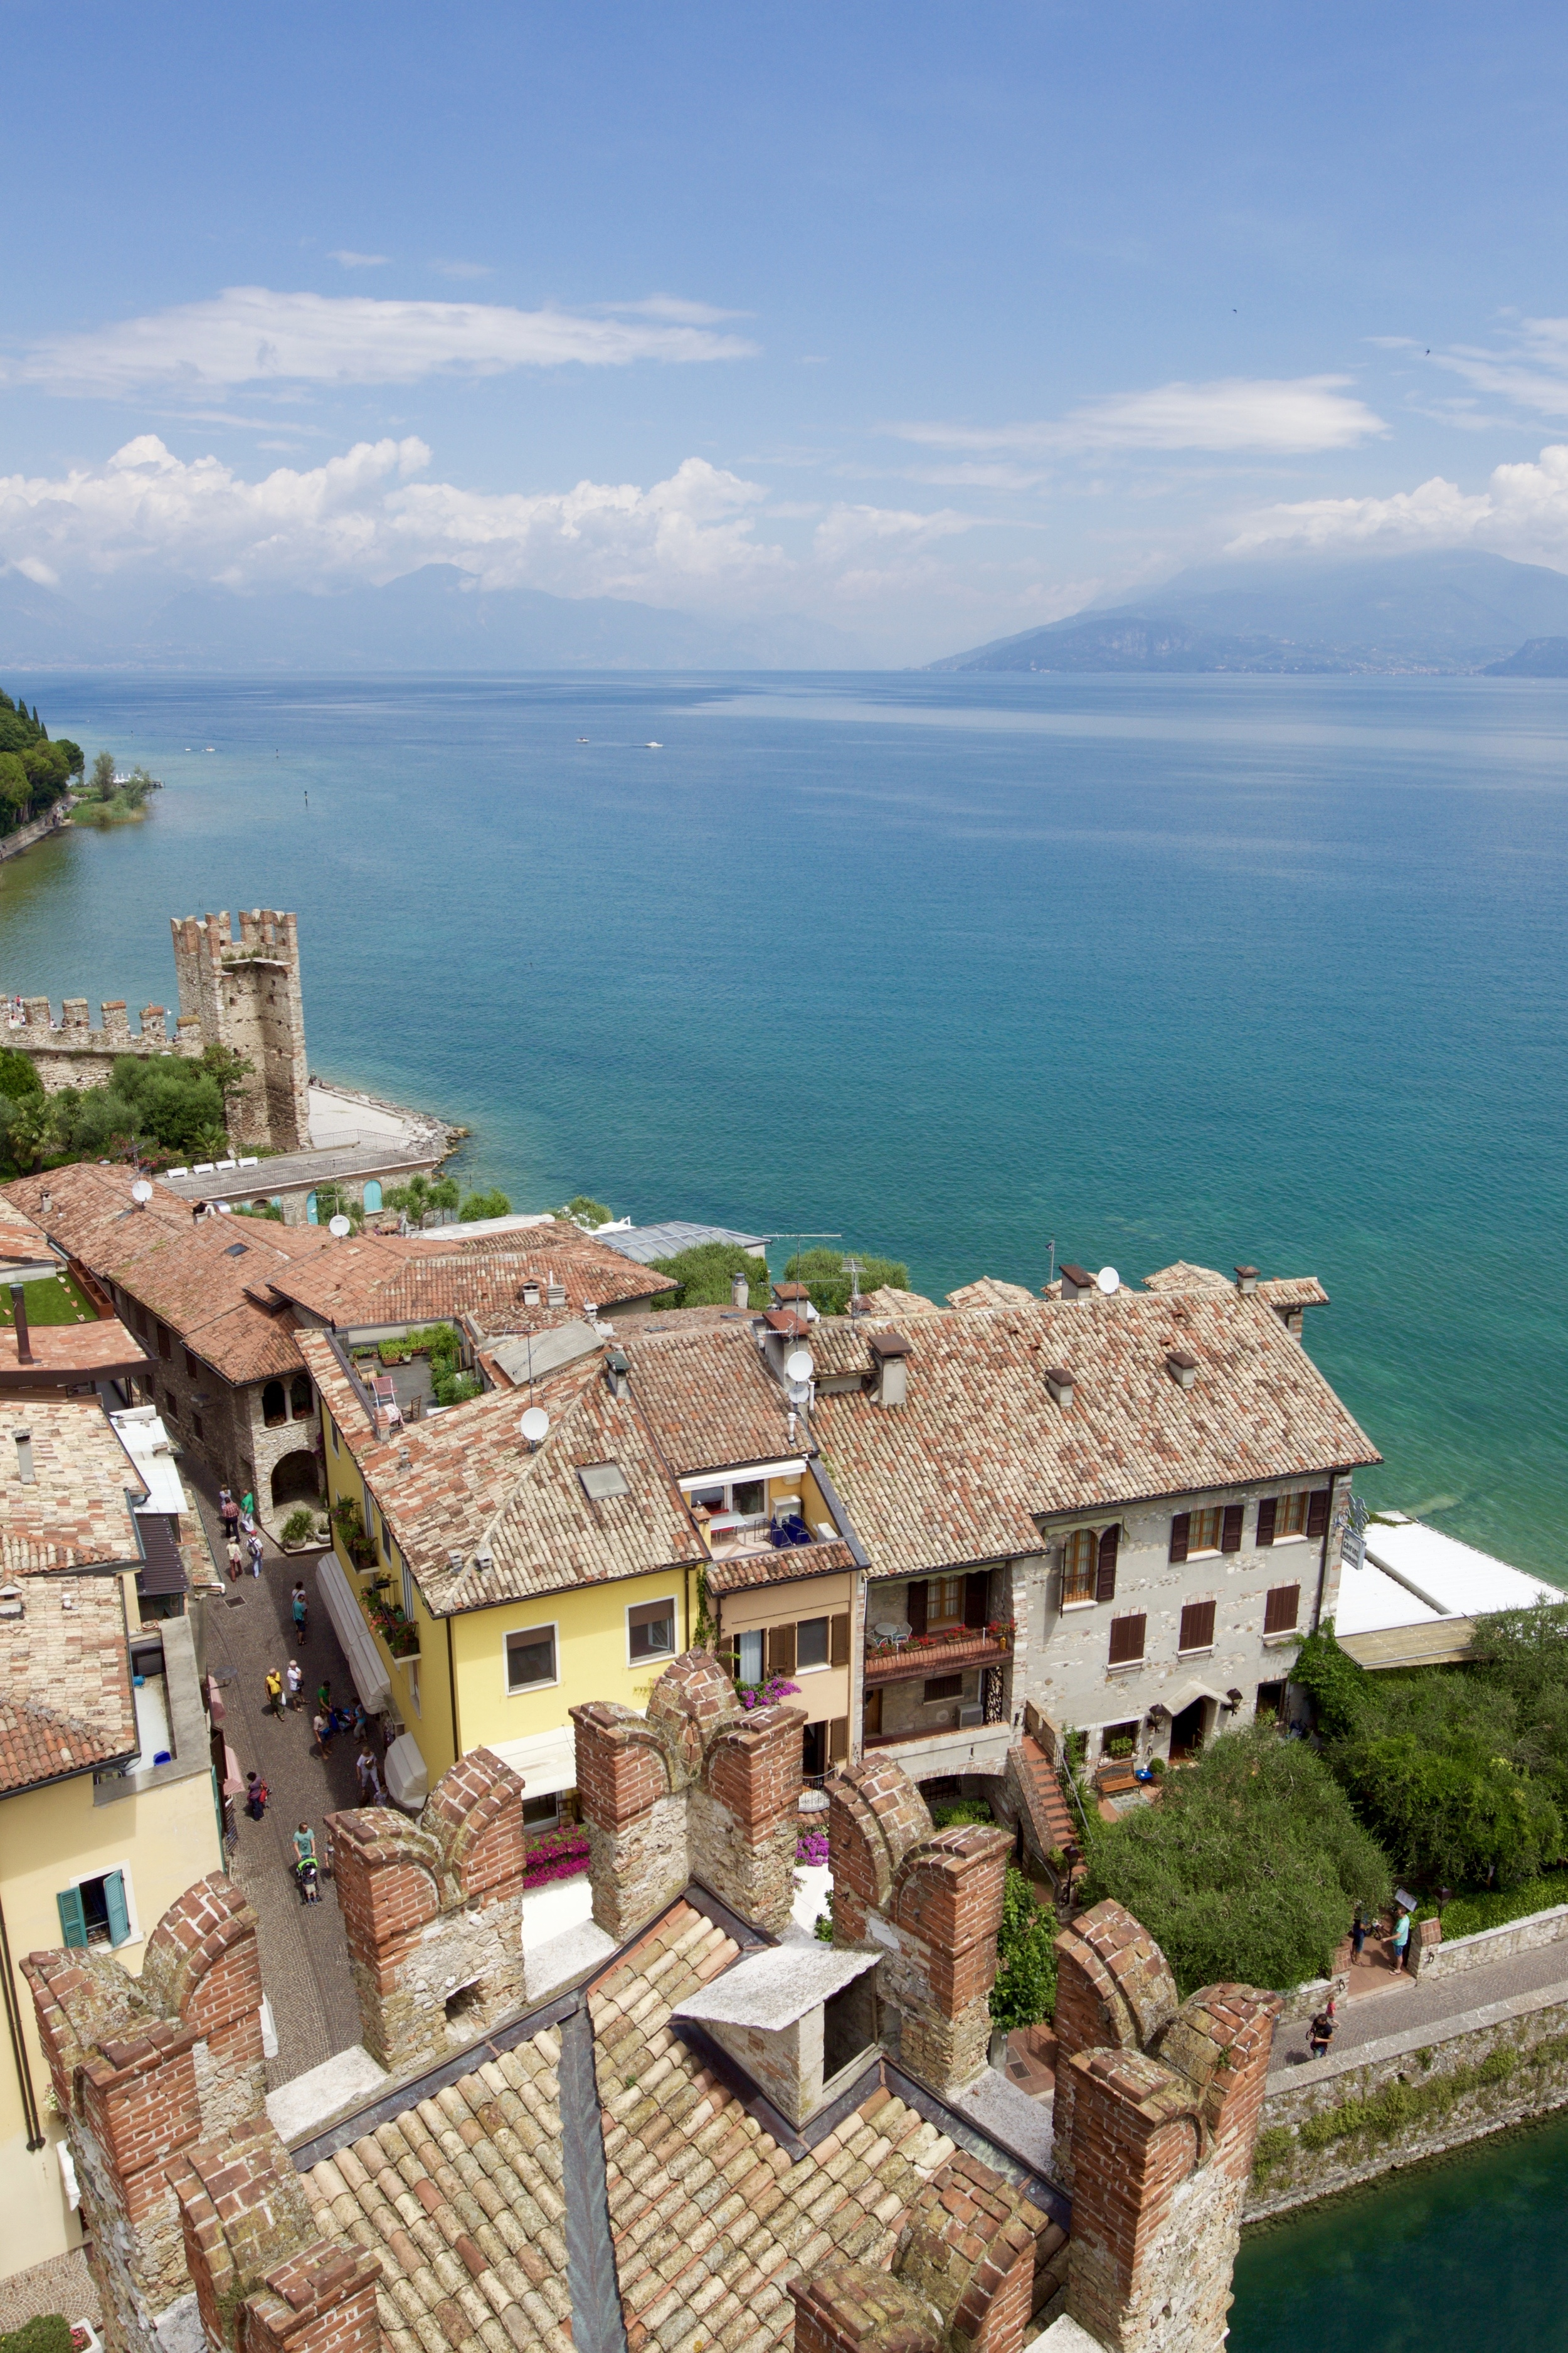 The view from the top of Castello Scaligera